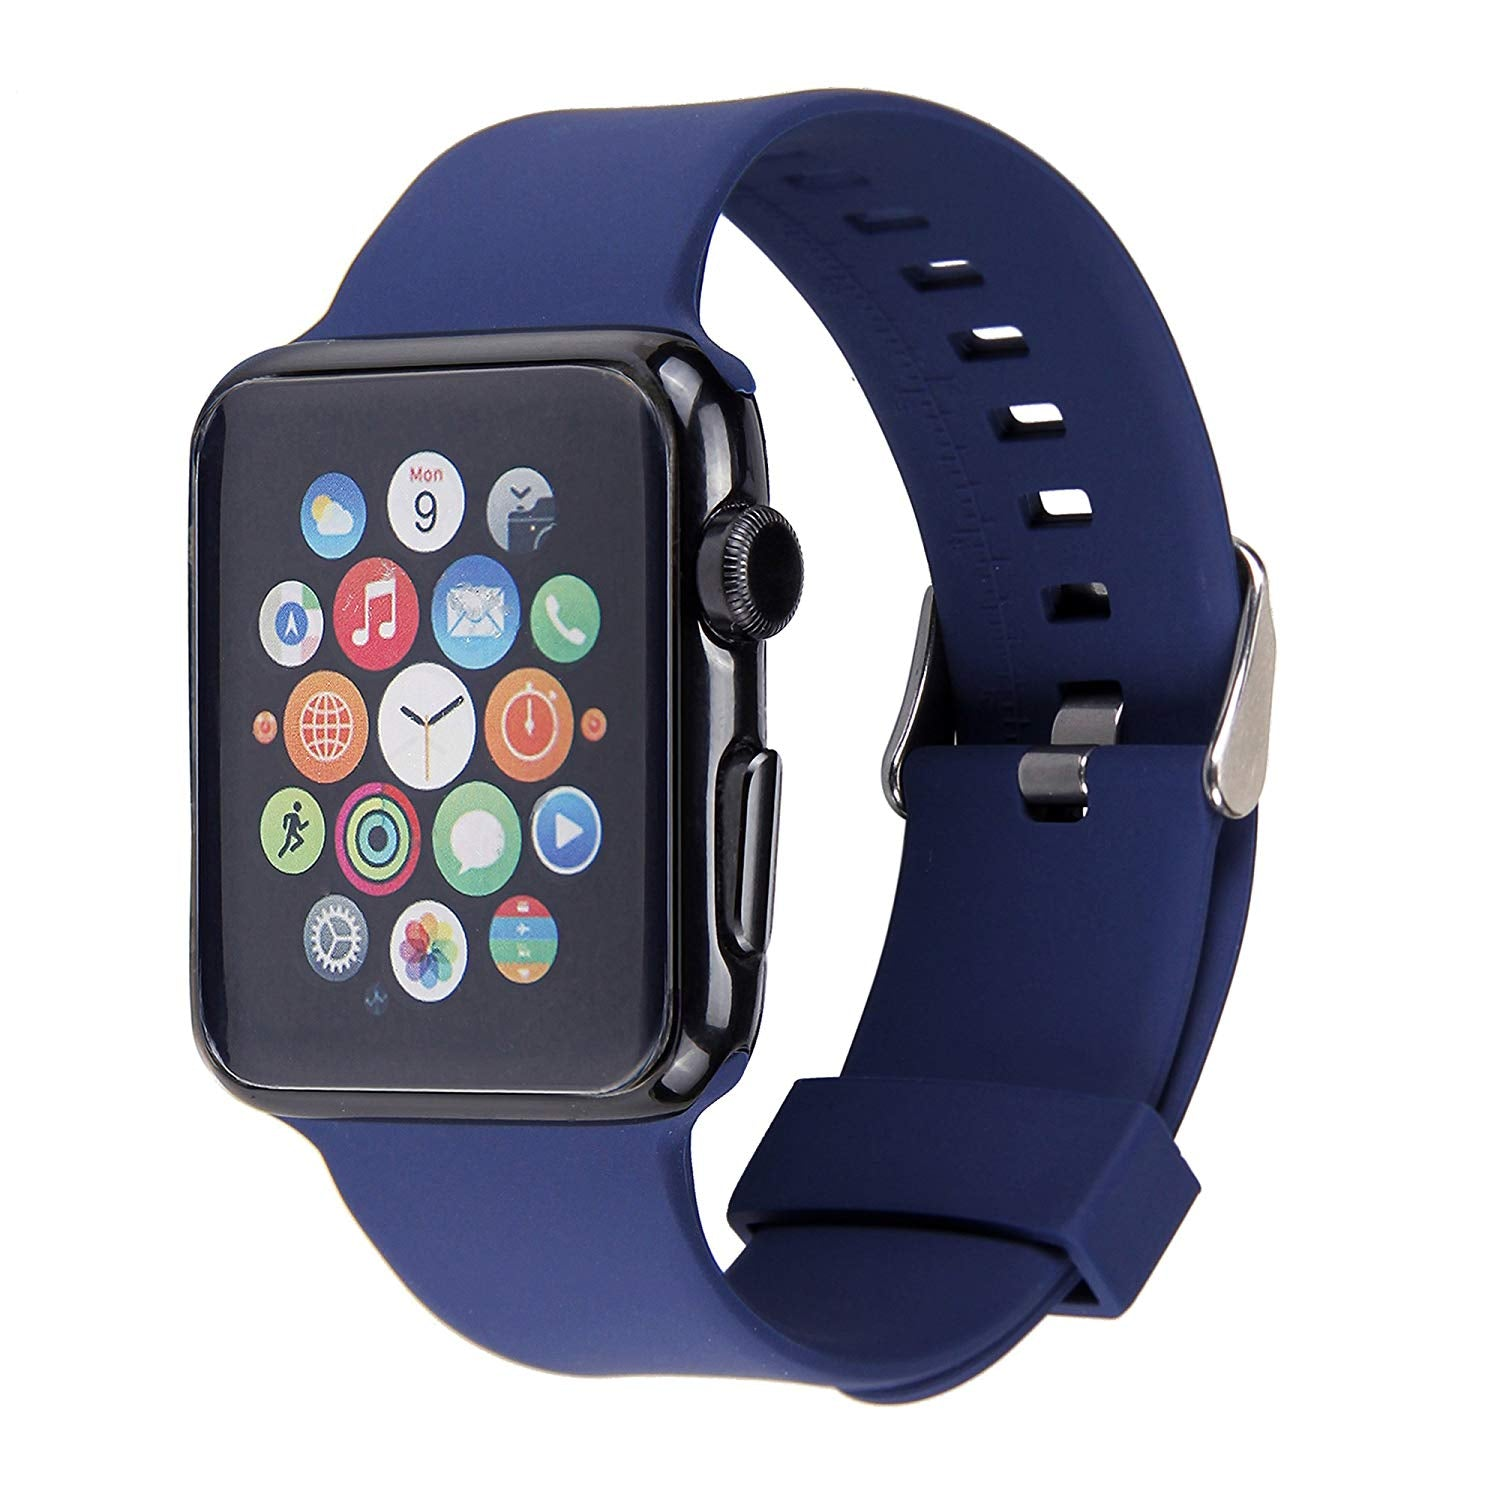 Apple Watch Silicone Band (Solid Color- Navy Blue)